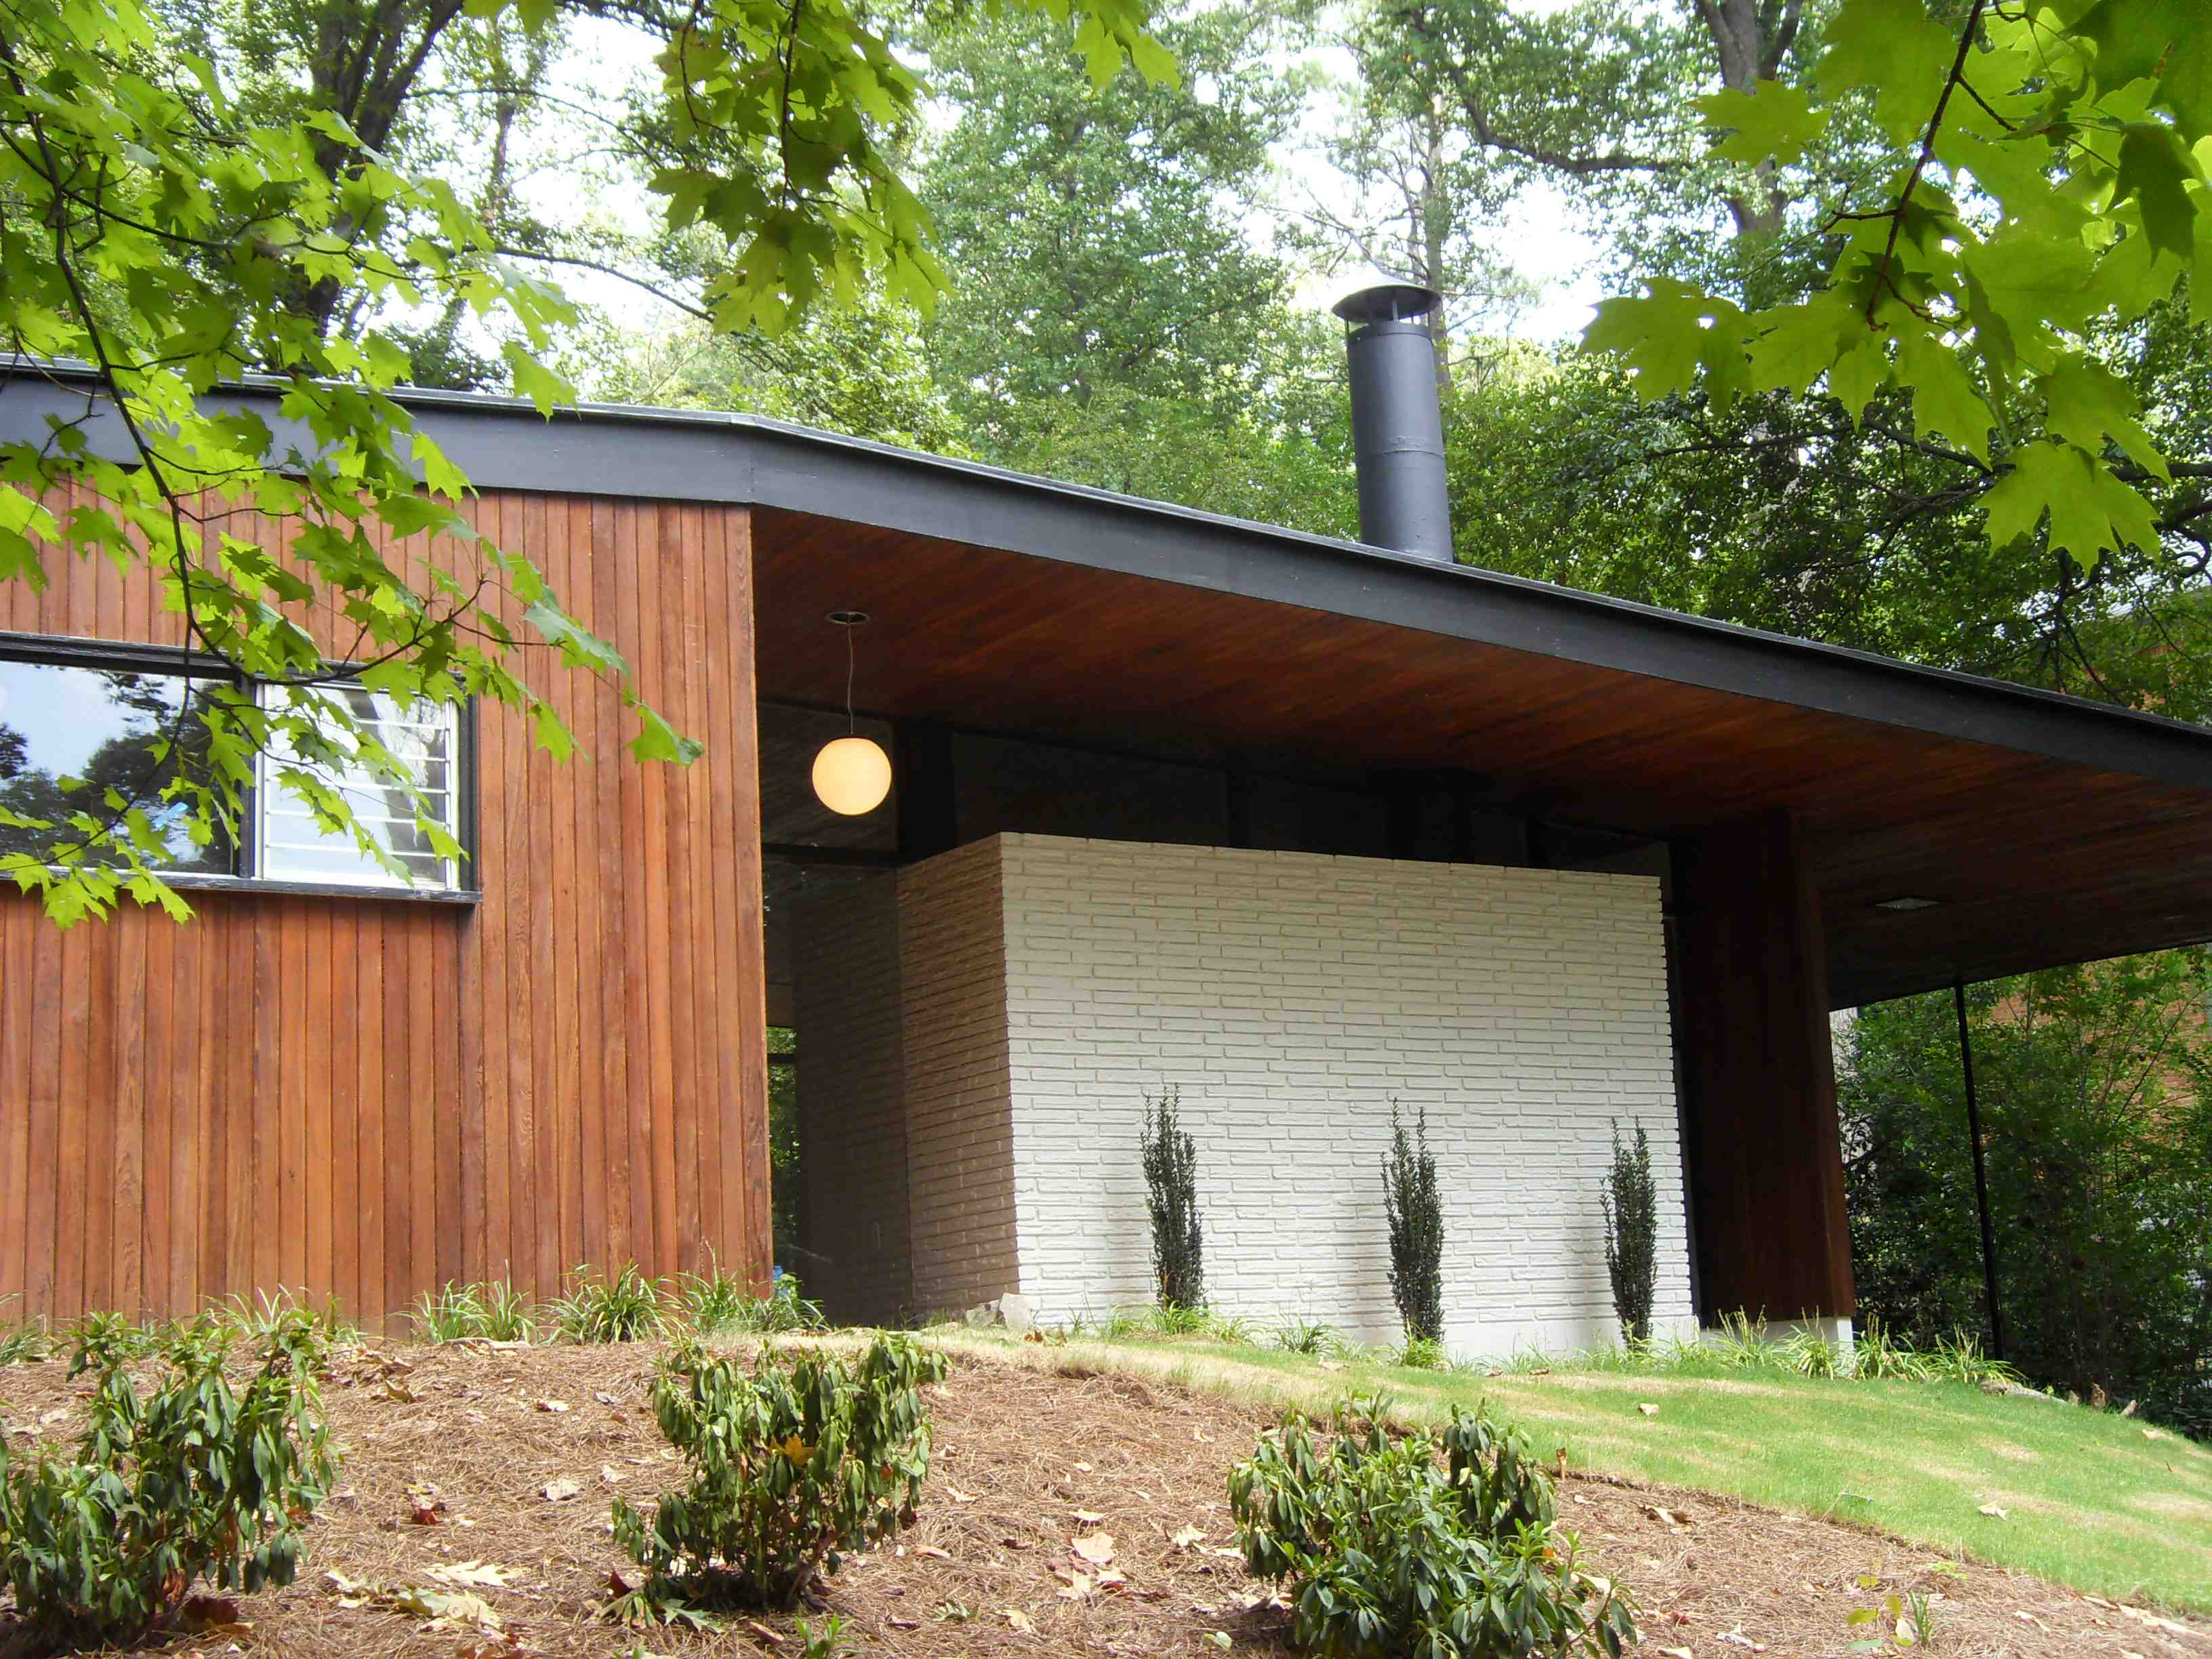 Modern atlanta homes for sale archives domorealty for Small modern homes for sale